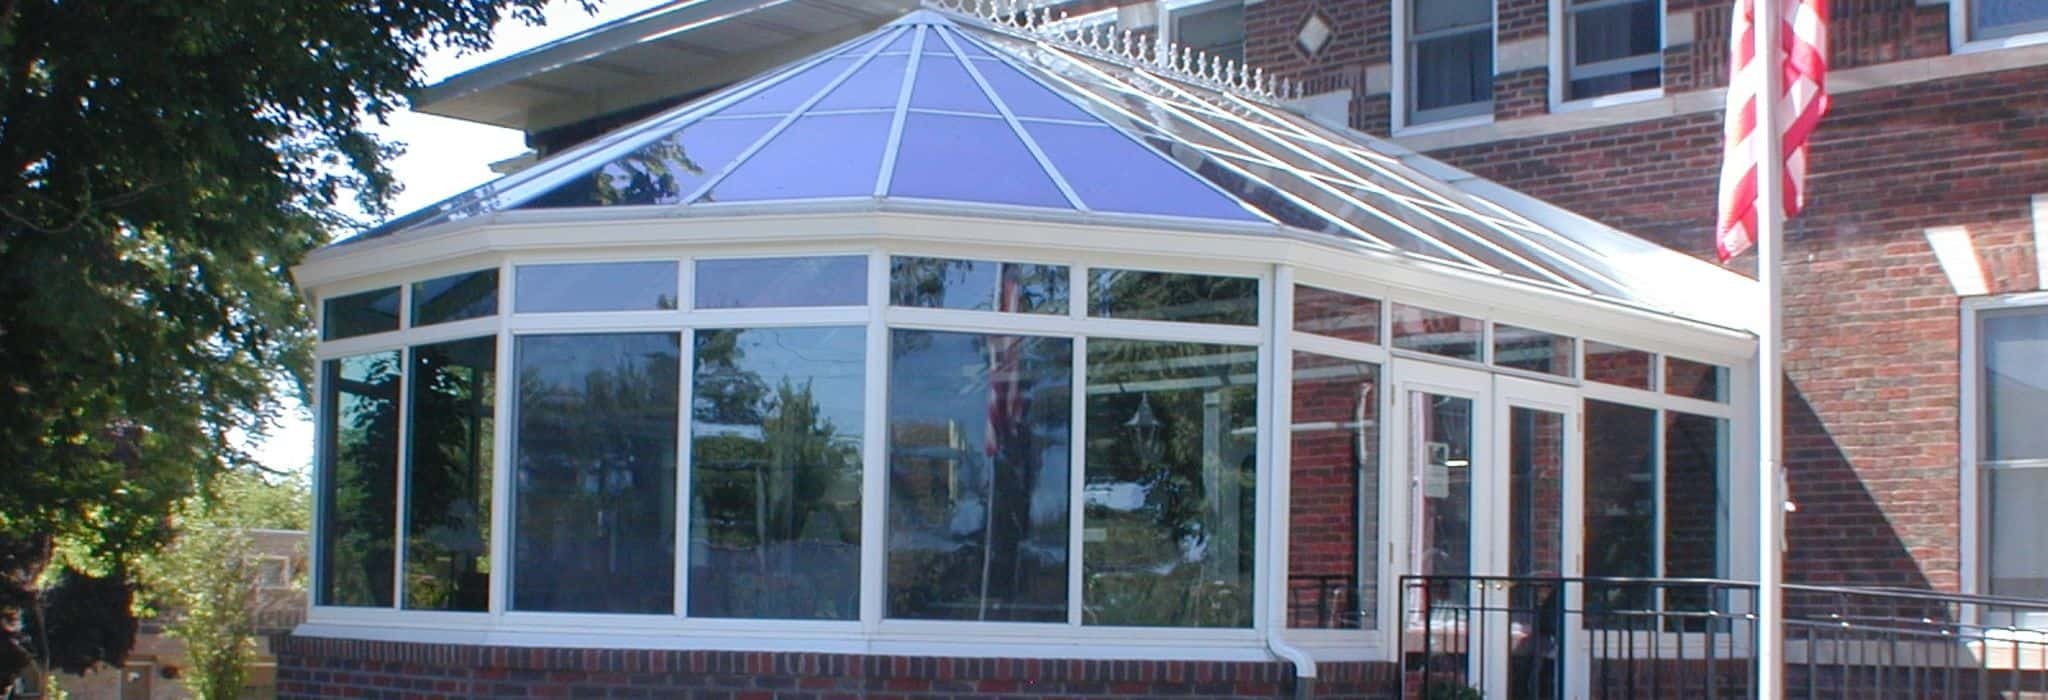 Commercial Awnings and Window Tinting Madison WI 1